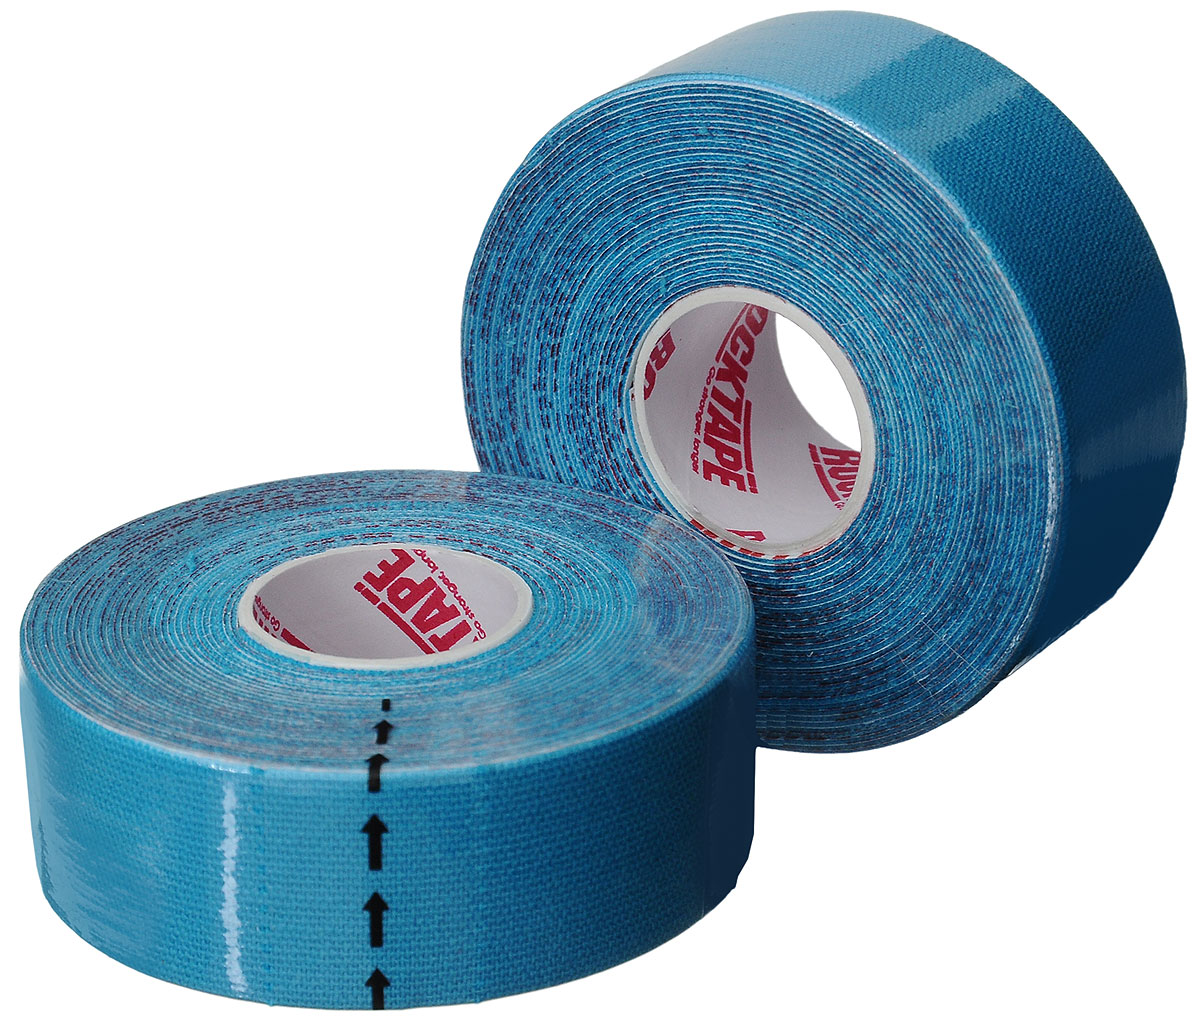 Кинезиотейп Rocktape Digit, цвет: голубой, 2,5 x 500 см, 2 шт